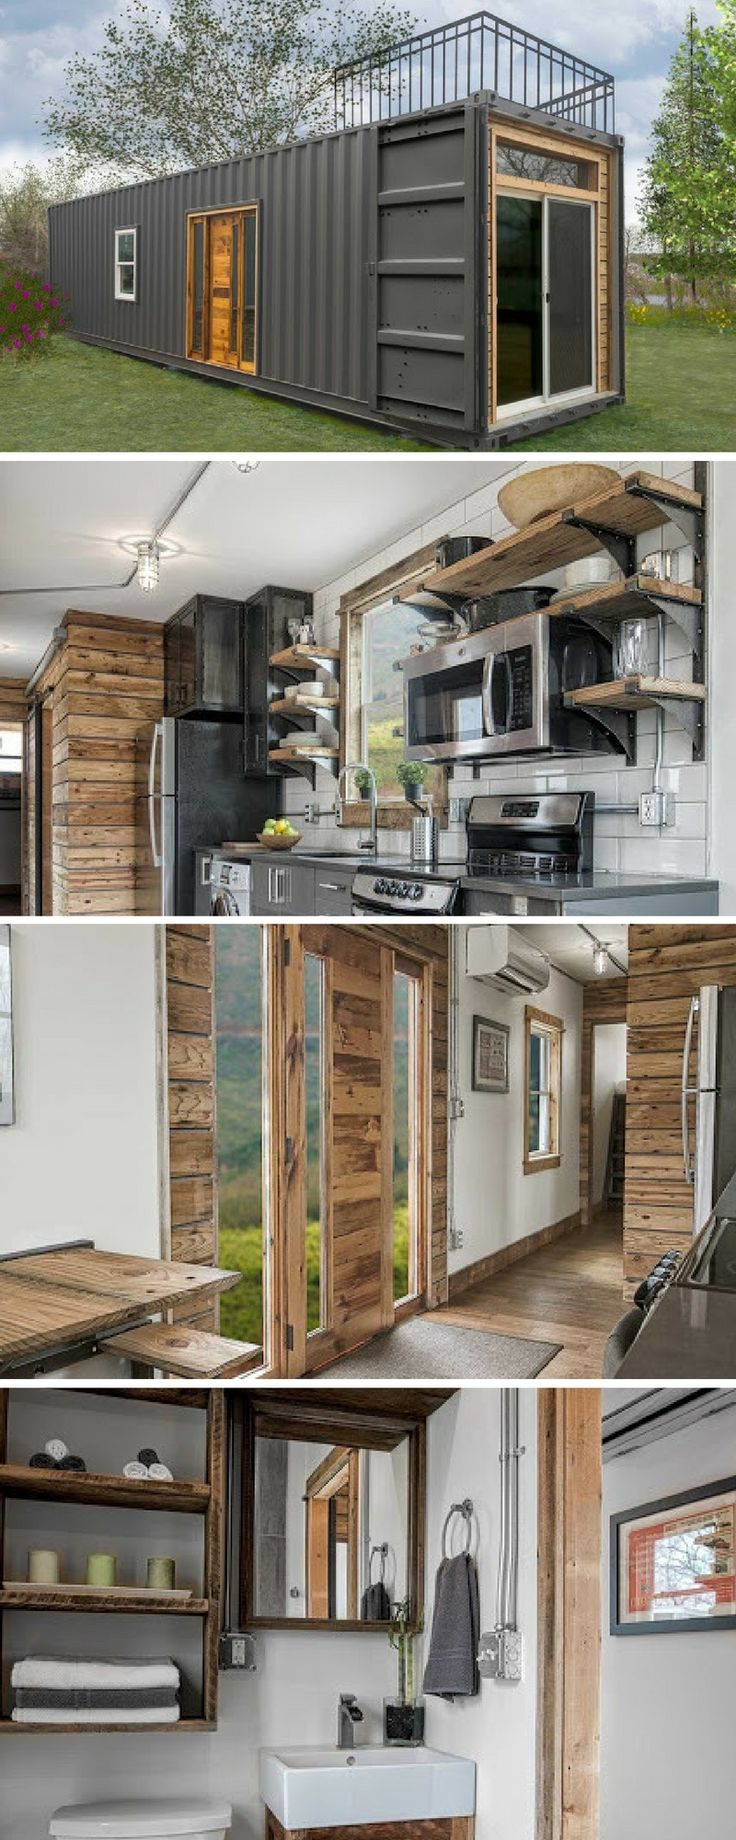 Best Kitchen Gallery: 951 Best Containers Images On Pinterest Shipping Containers of Fallout Shelter Built From Shipping Containers on rachelxblog.com